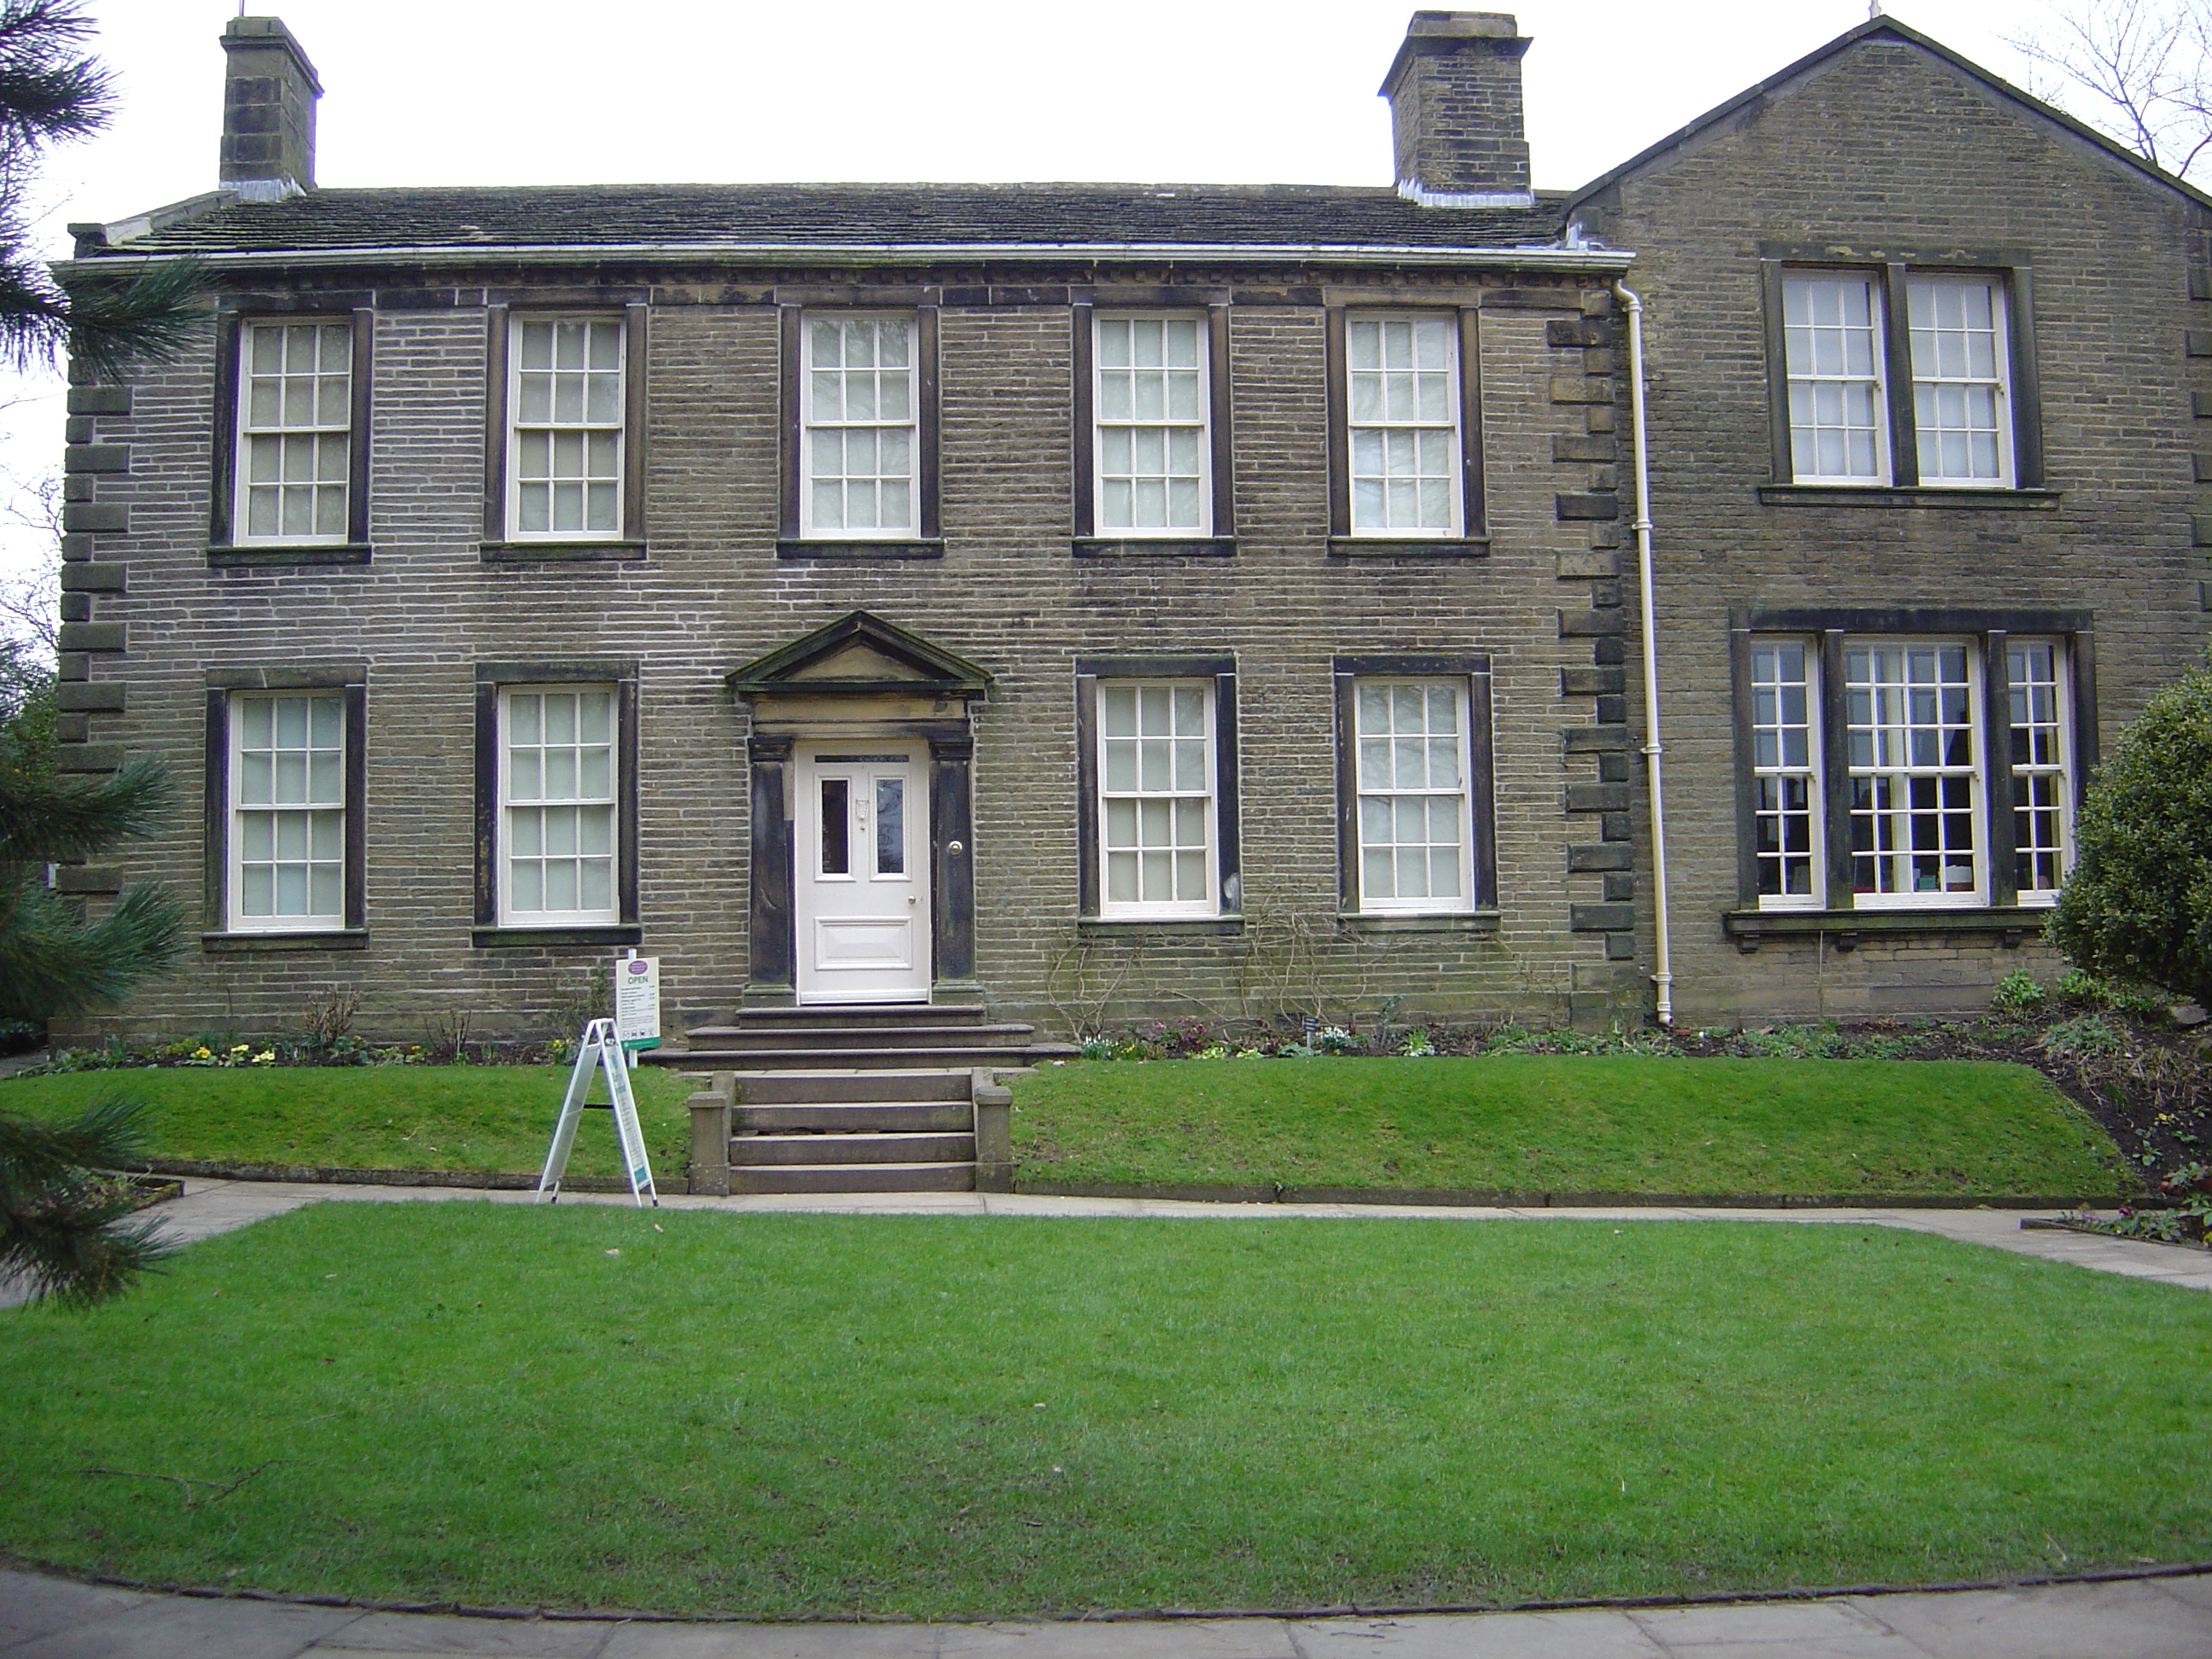 https://upload.wikimedia.org/wikipedia/commons/e/e4/Bronte_Parsonage_Museum.JPG